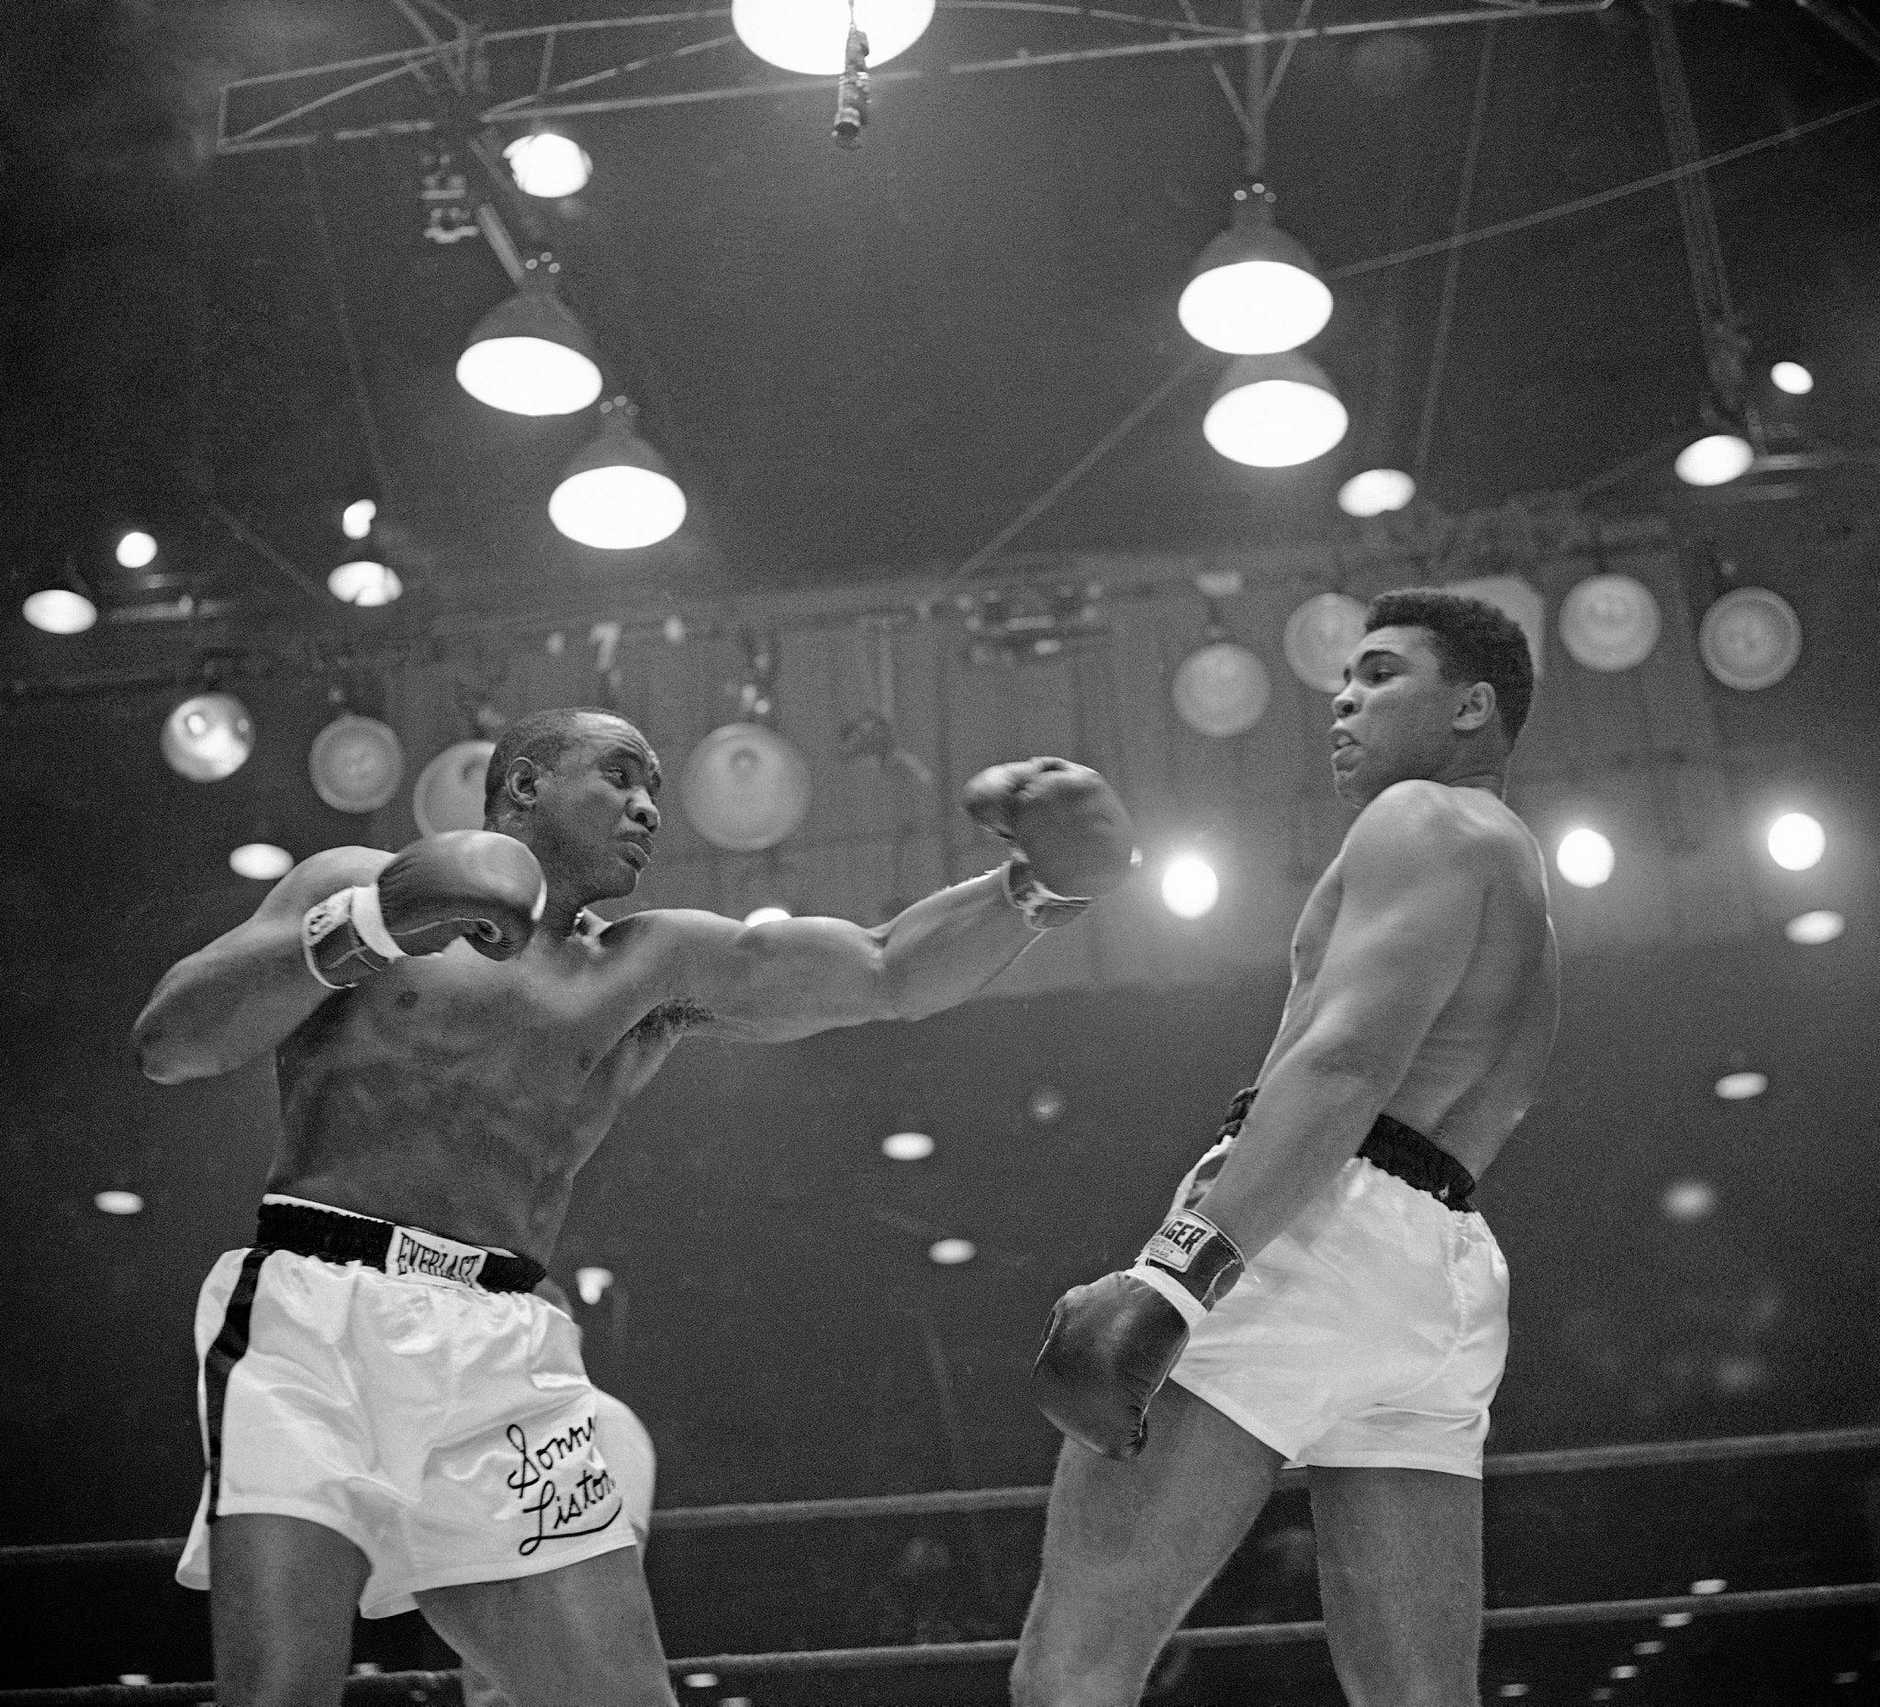 Muhammad Ali in action against Sonny Liston in 1964.